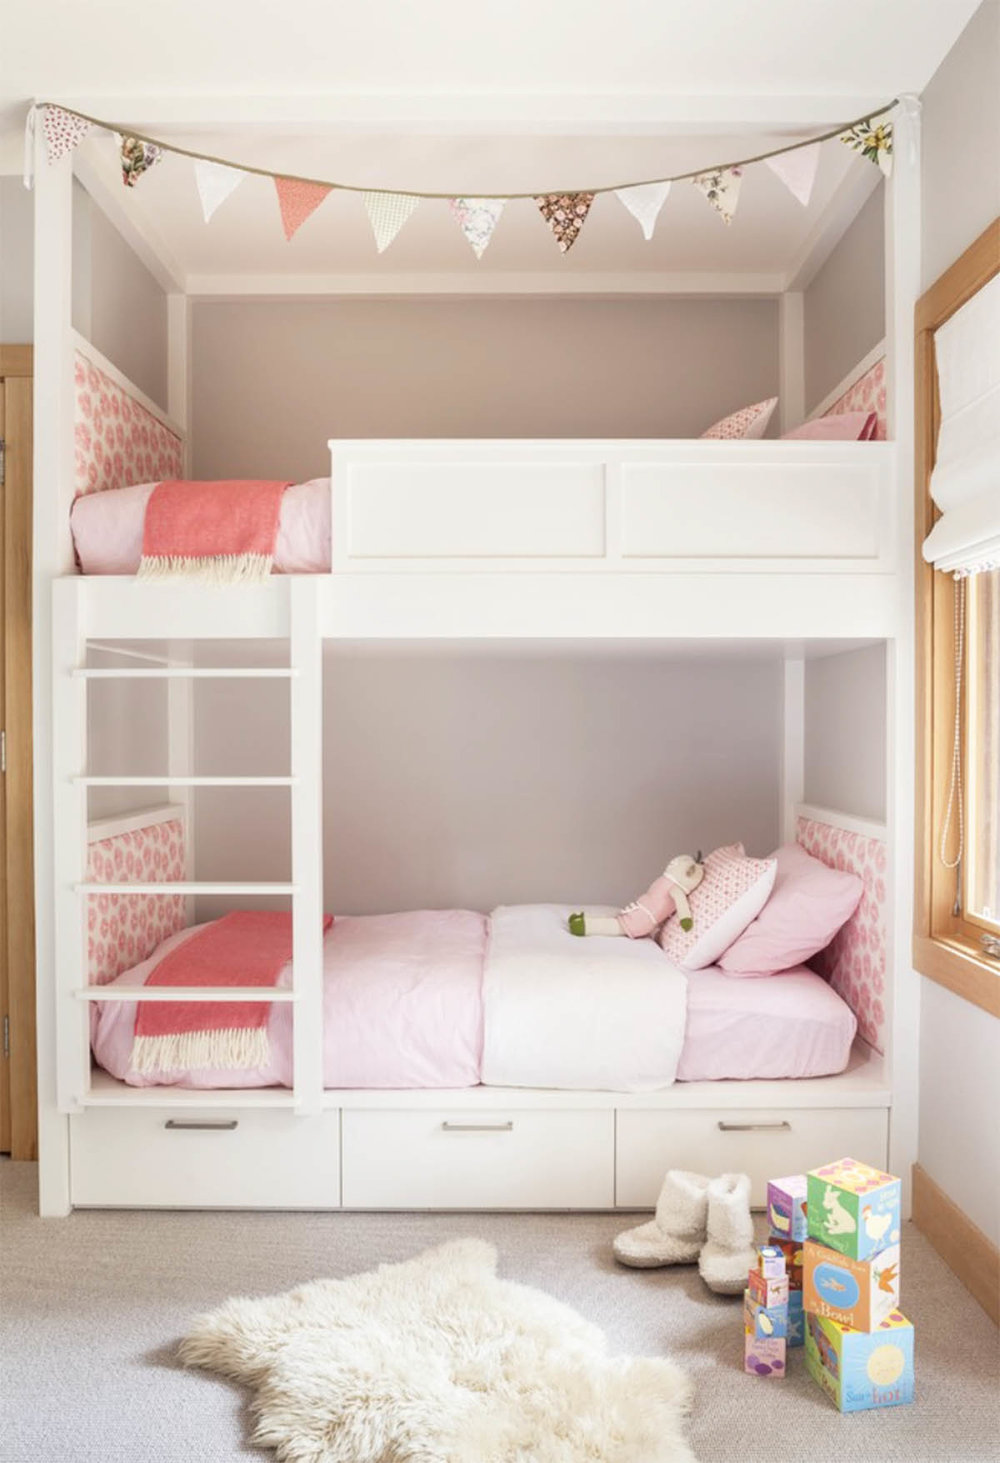 Inspiration Shared Kids Rooms With Bunk Beds Winter Daisy